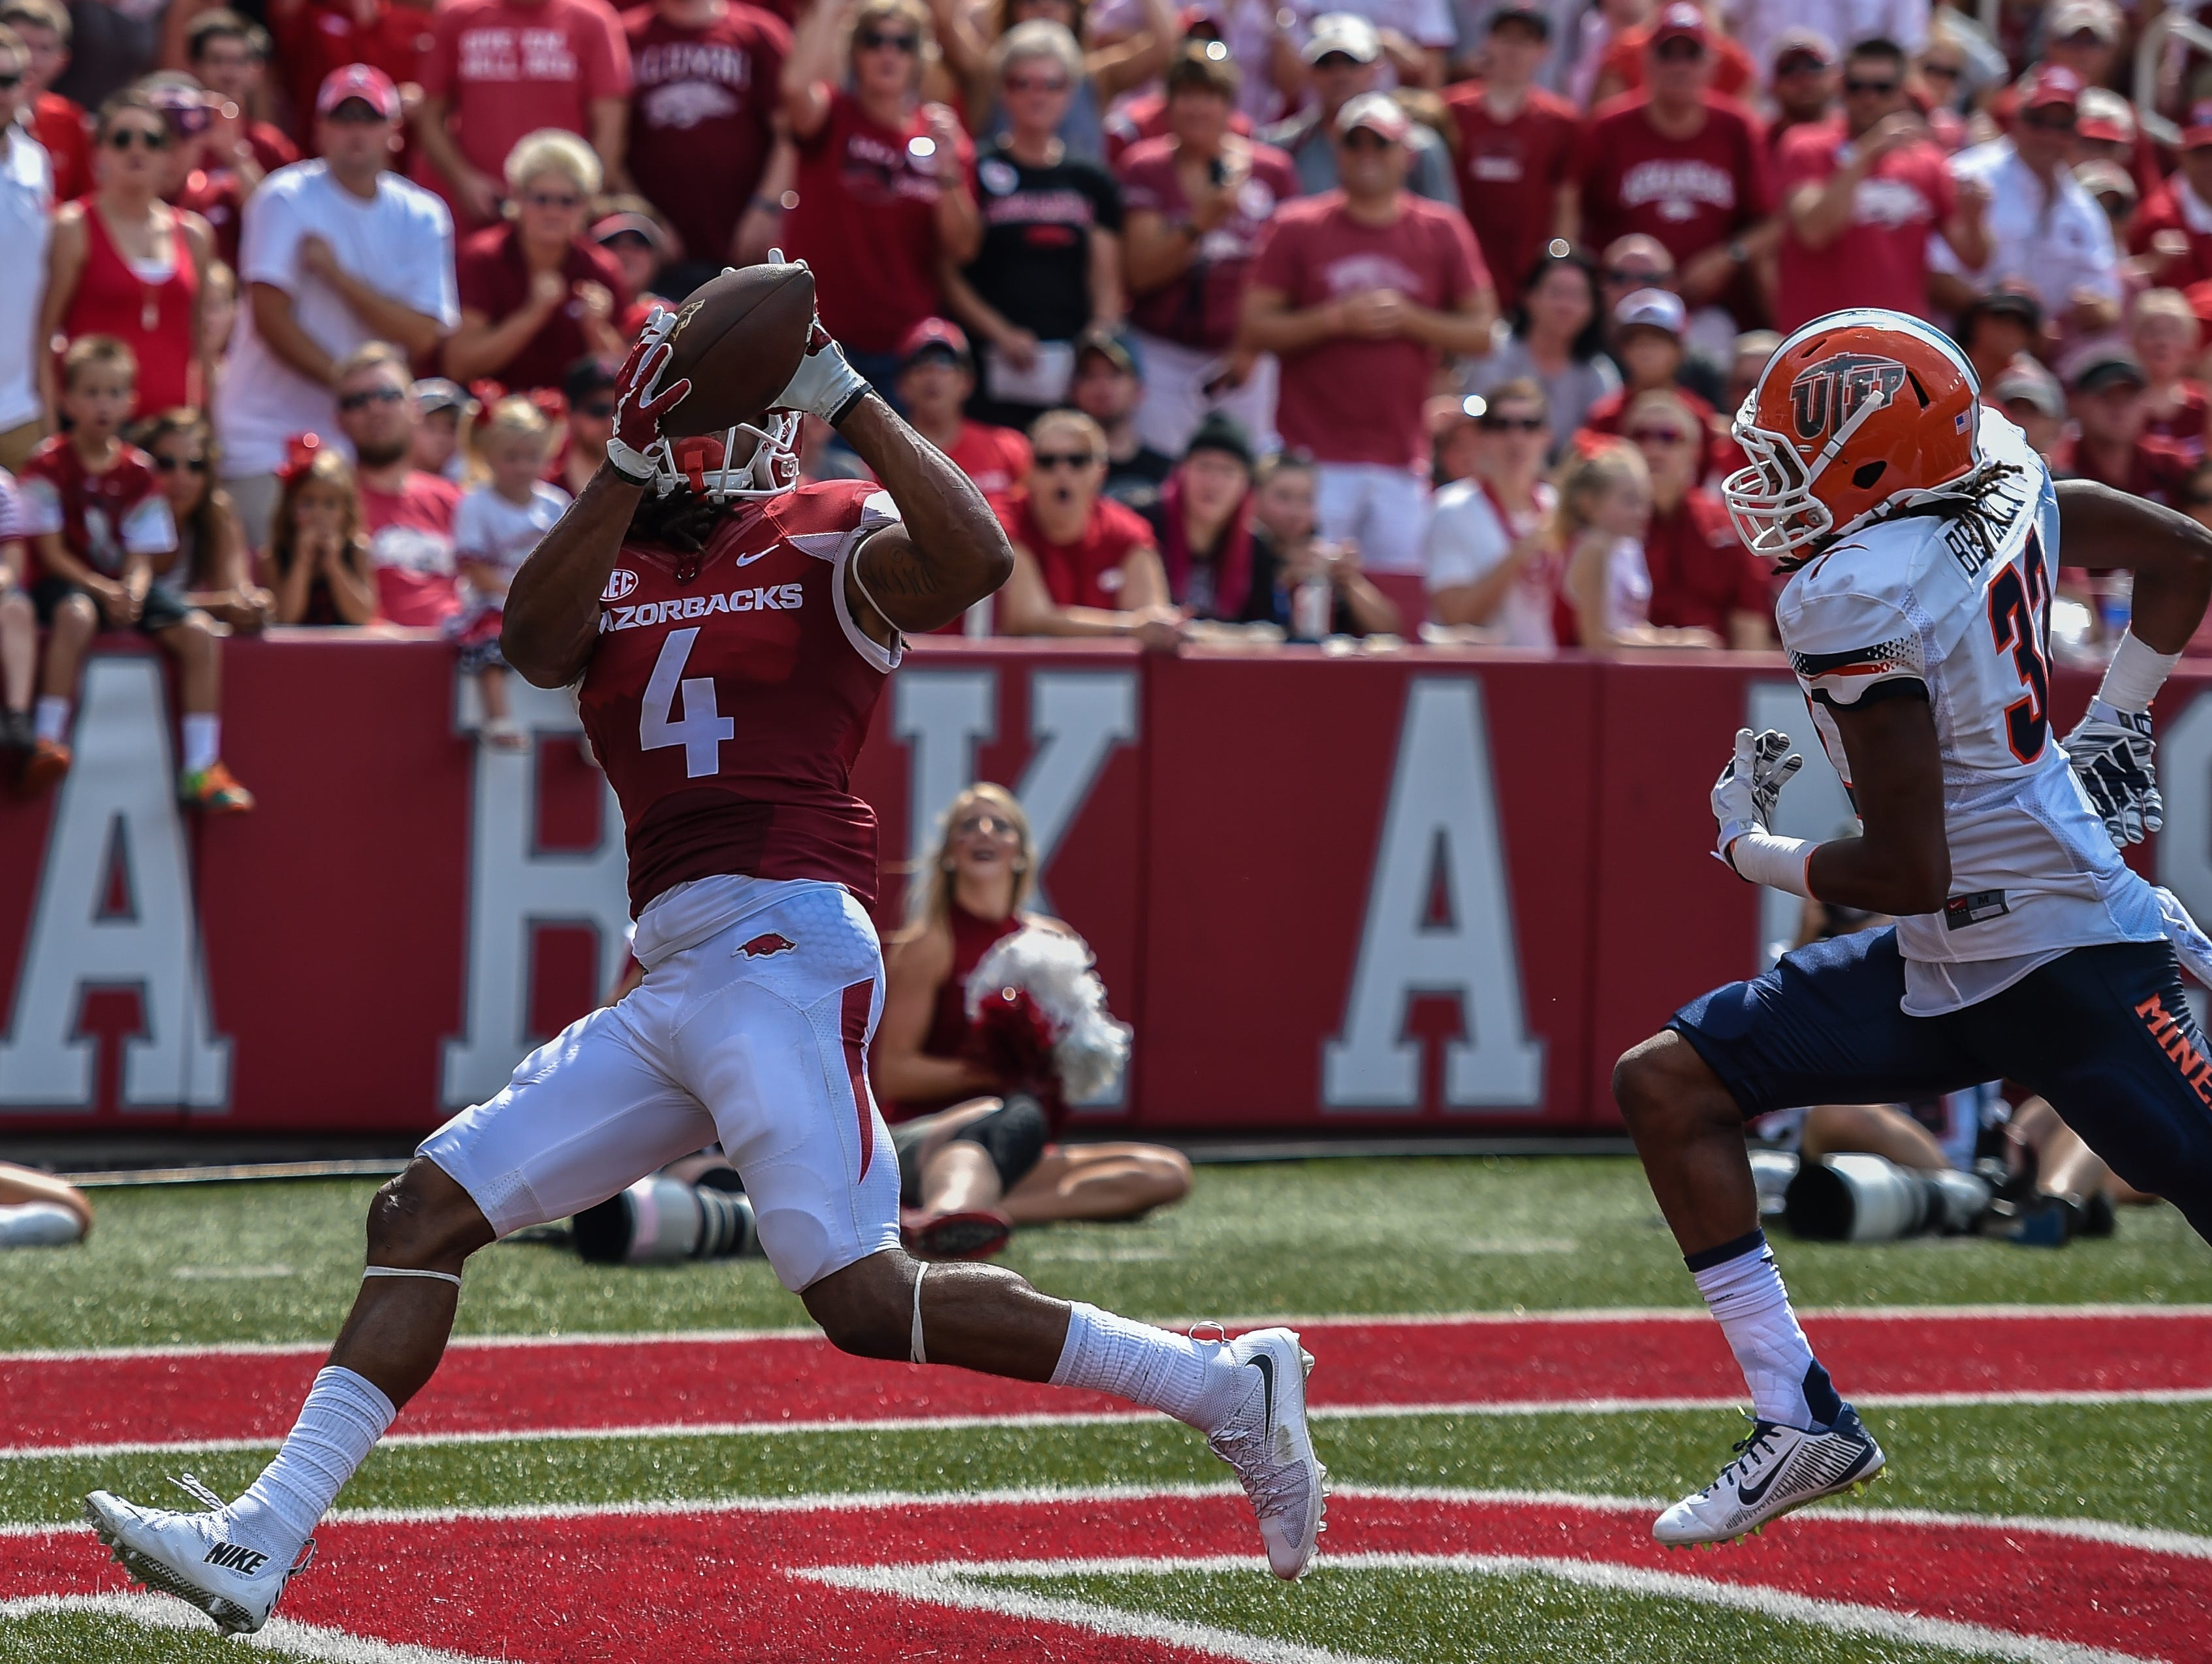 Arkansas Razorbacks wide receiver Keon Hatcher (4) with a touchdown catch during a football game between the Arkansas Razorbacks and the UTEP Miners on Saturday, September 5, 2015 at the Donald W. Reynolds Razorback Stadium in Fayetteville, Arkansas. Arkansas won the game 48-13.